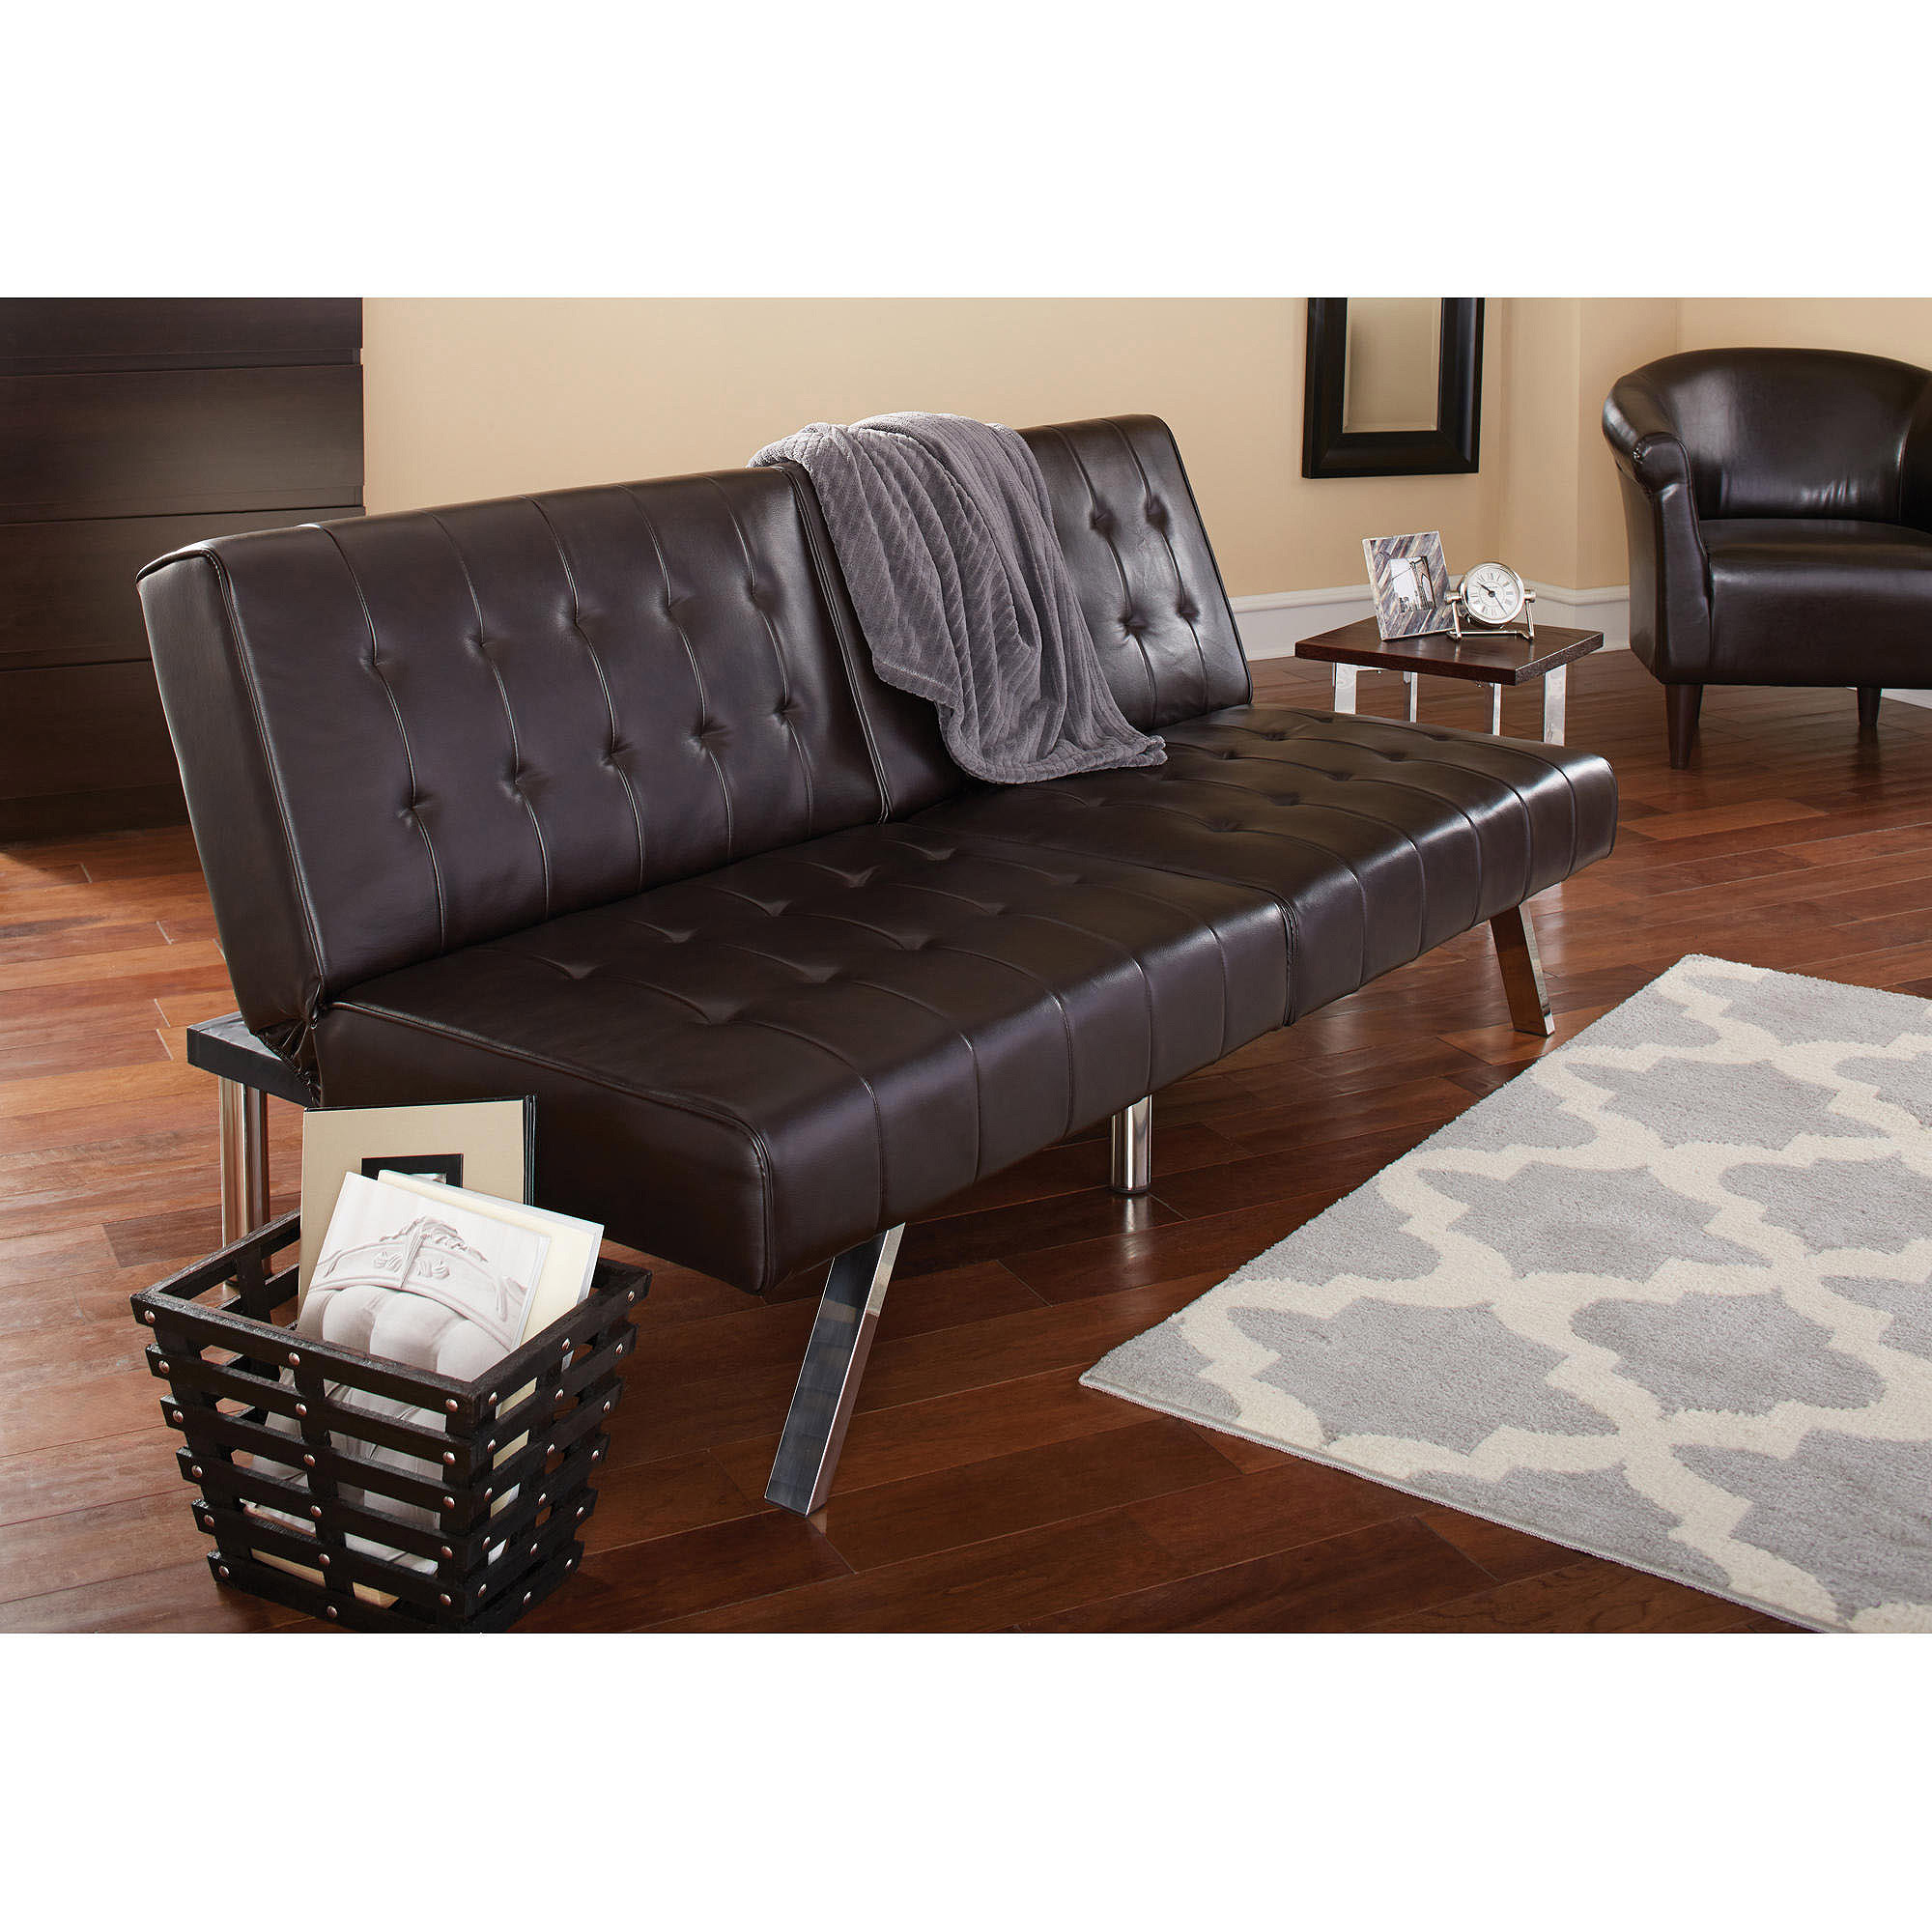 Bed chair pillow walmart - Mainstays Morgan Faux Leather Tufted Convertible Futon Brown Walmart Com